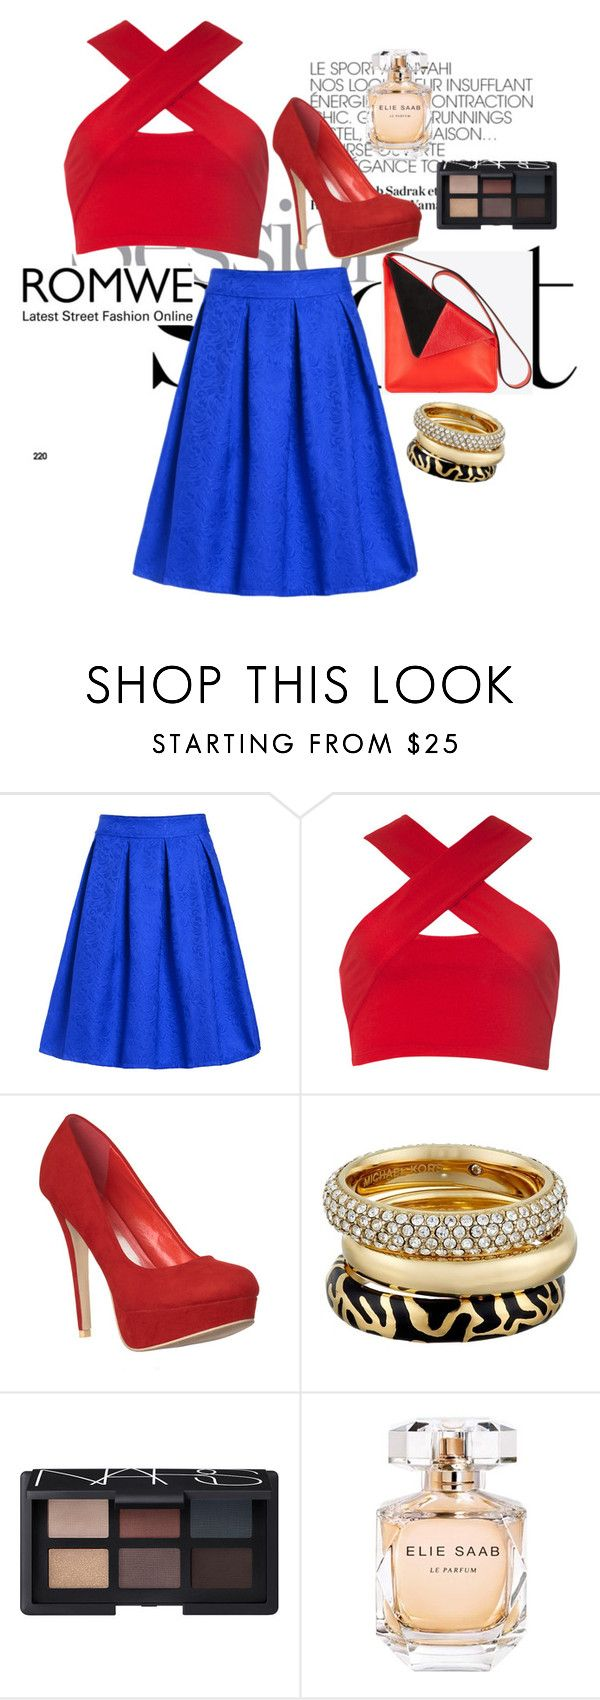 """Blue midi skirt ROMWE"" by clairejagus ❤ liked on Polyvore featuring Motel, Michael Kors, NARS Cosmetics and Elie Saab"